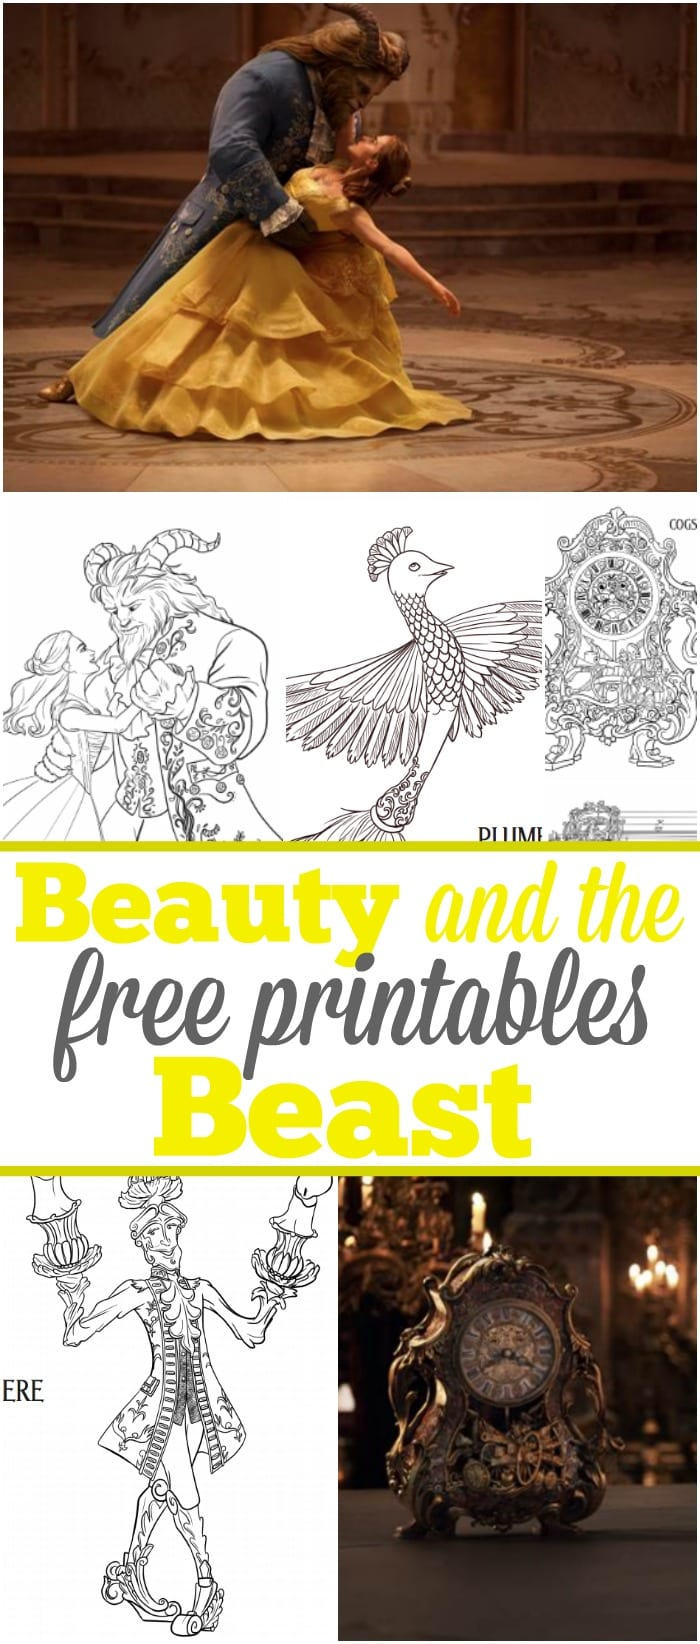 6 beauty and beast free printables typical mom, love coloring pages printable